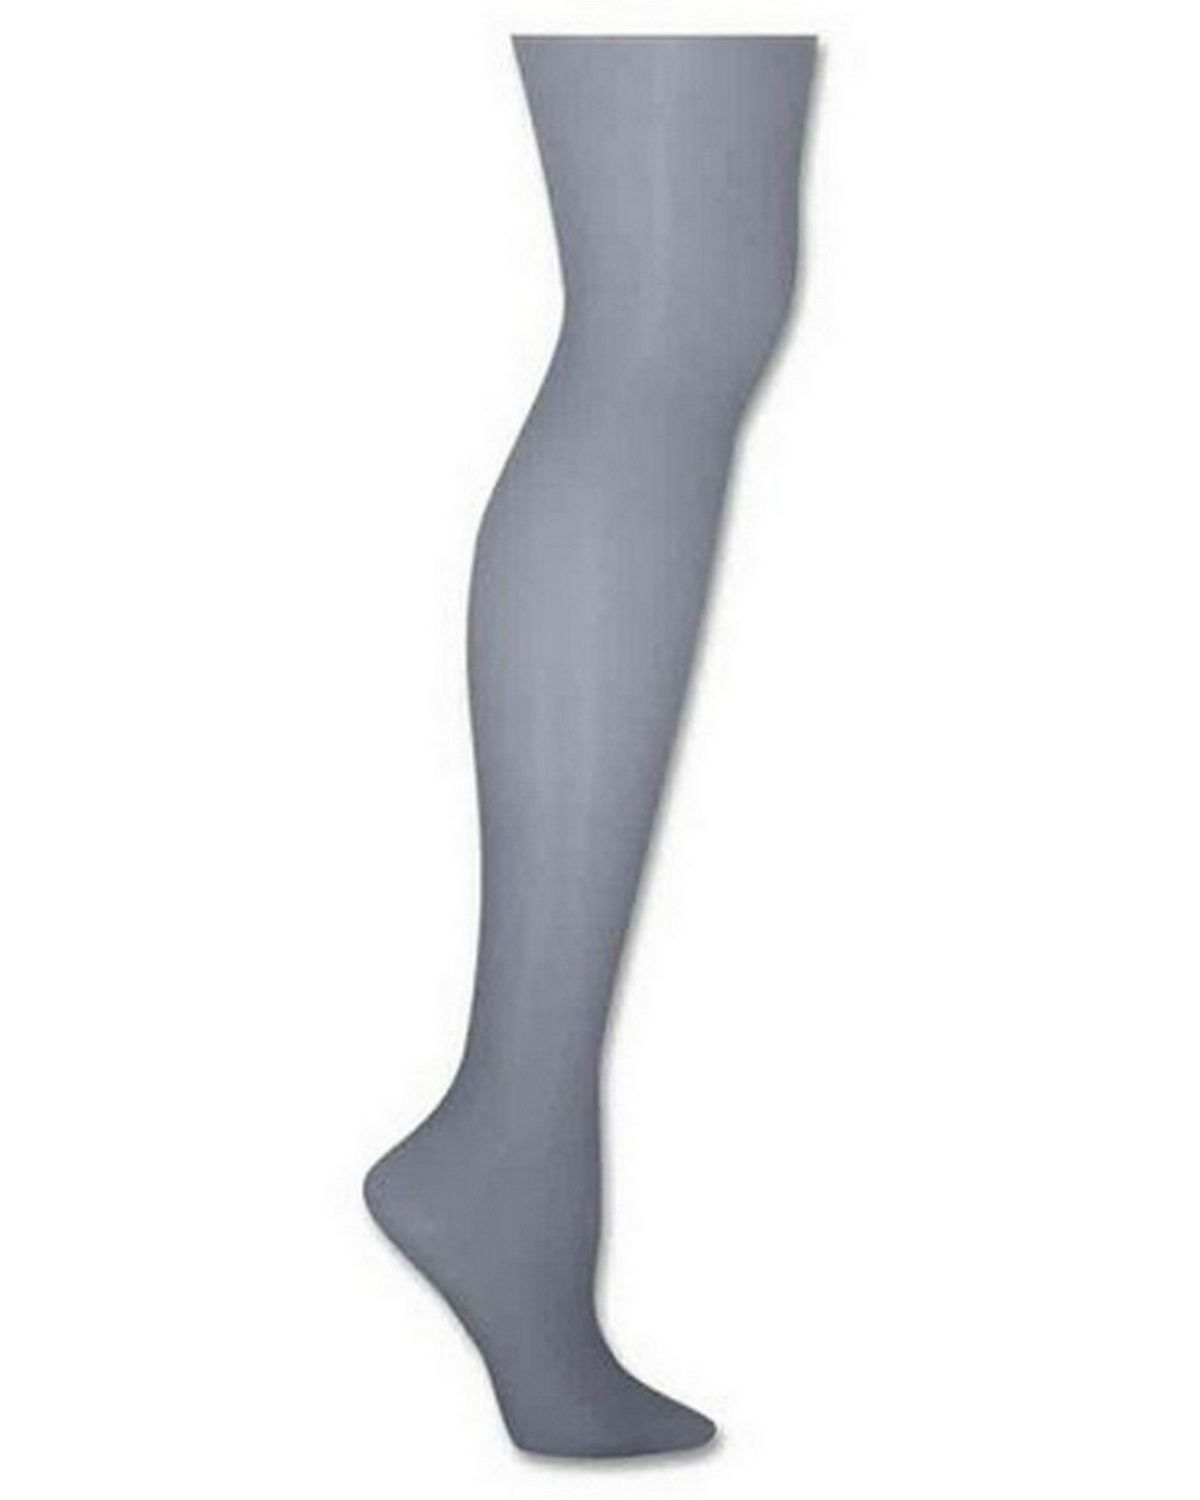 Hanes 717 Women's Silk Reflections Control Top Sheer Toe Pantyhose - Classic Navy - AB #silk